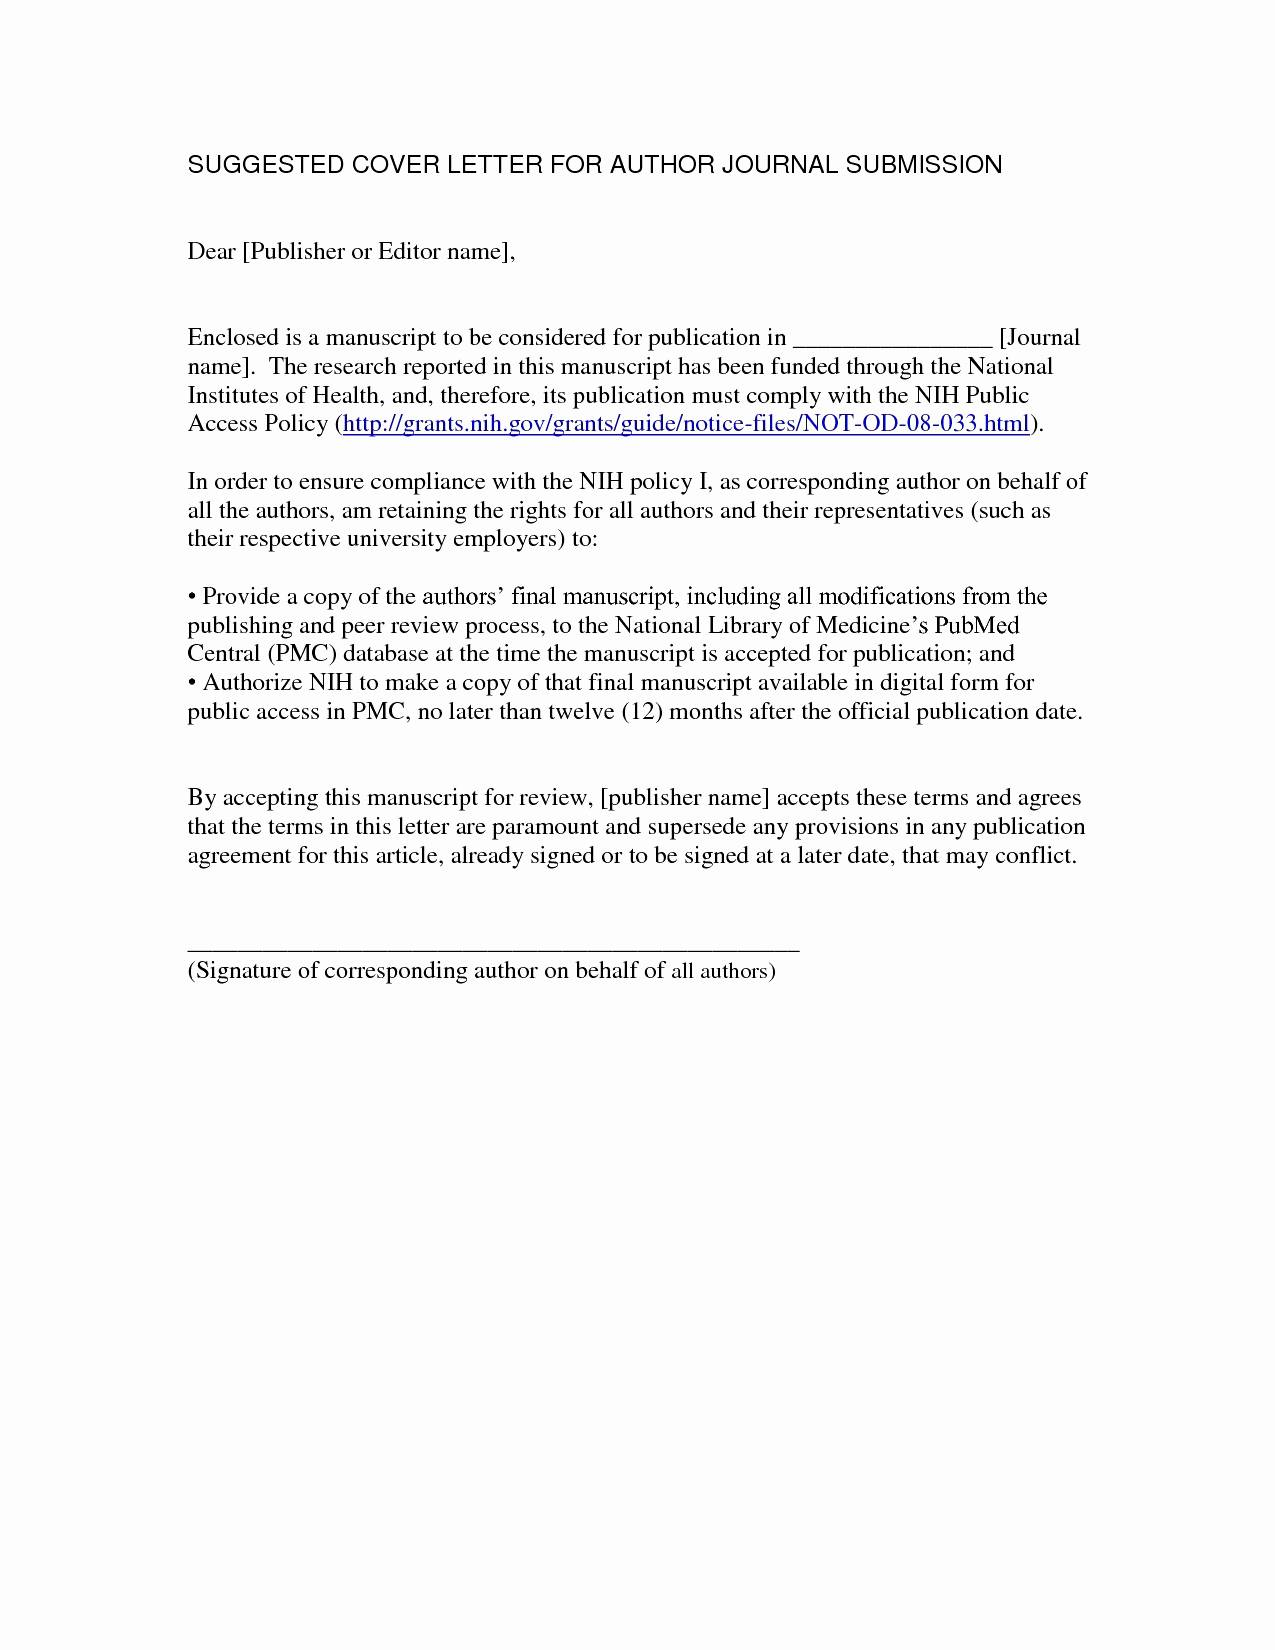 Cash Out Refinance Letter Template - Goldman Sachs Cover Letter Sample Awesome 21 Awesome Collection